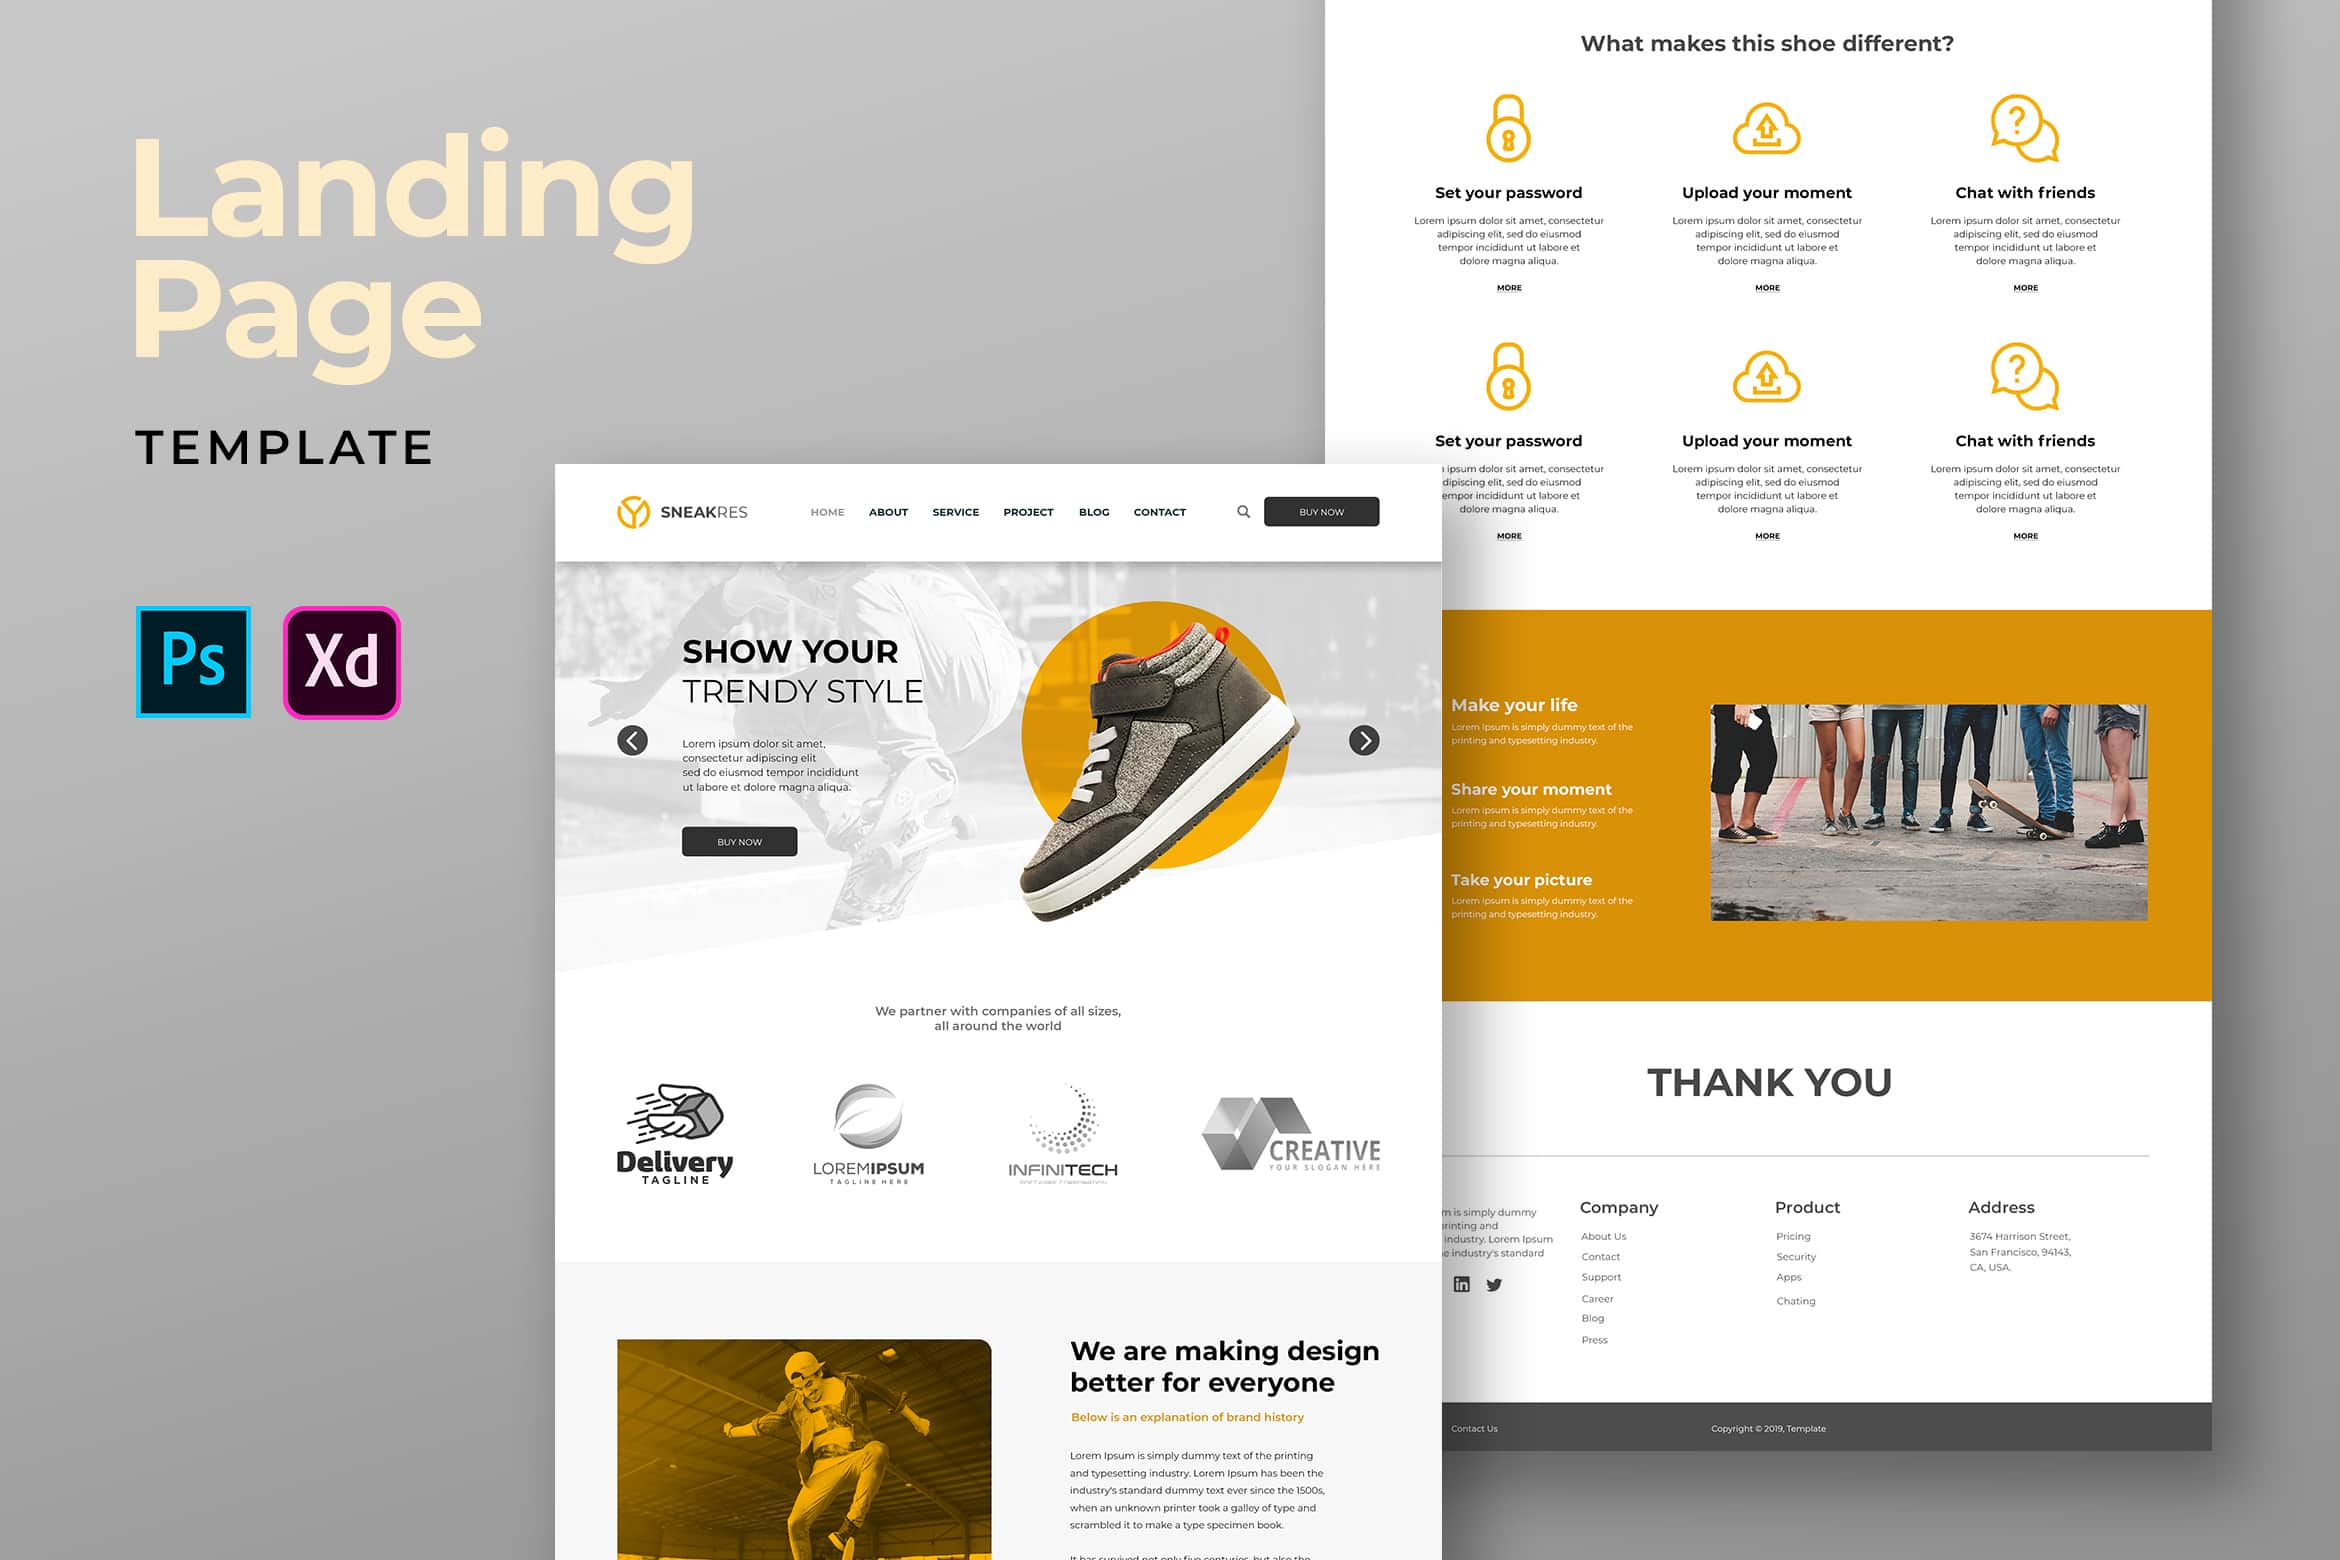 Landing Pages - Trendy Shoes